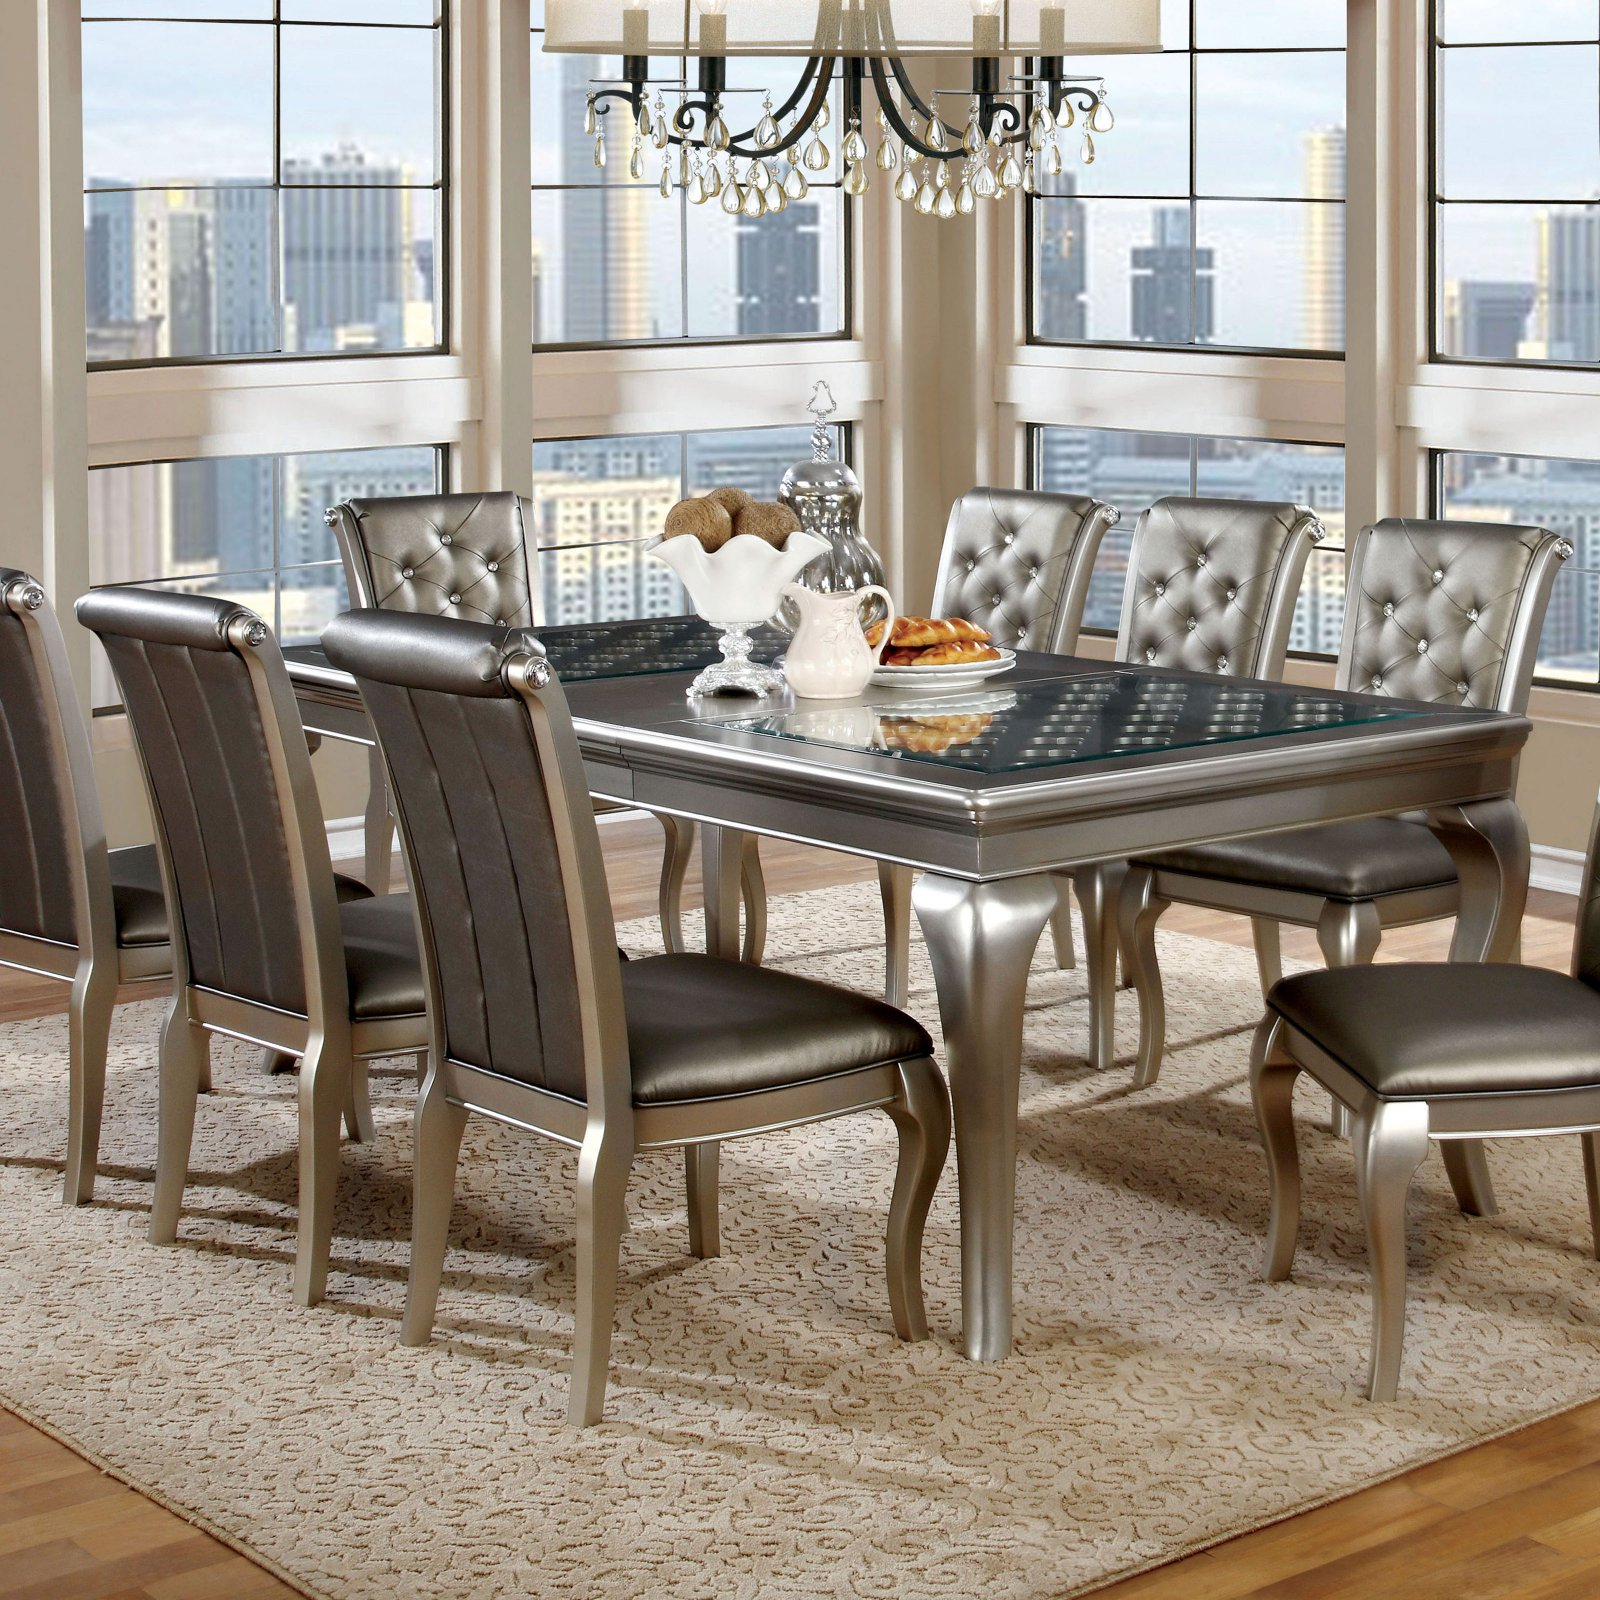 Furniture of America Sylera Dining Table